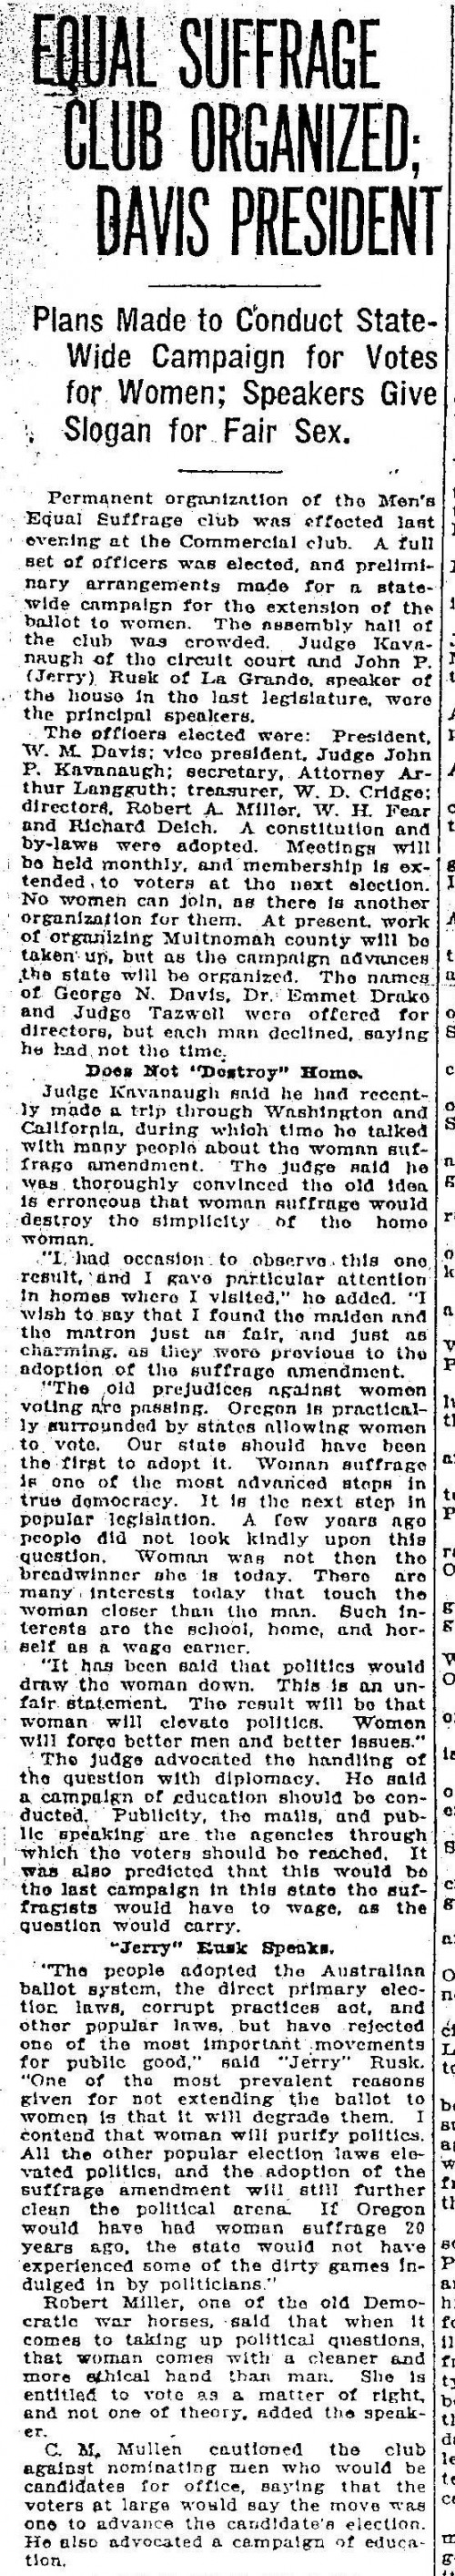 http://centuryofaction.org/images/uploads/OJ_January_13_1912_16_Equal_Suffrage_Club_Organized_thumb.jpg